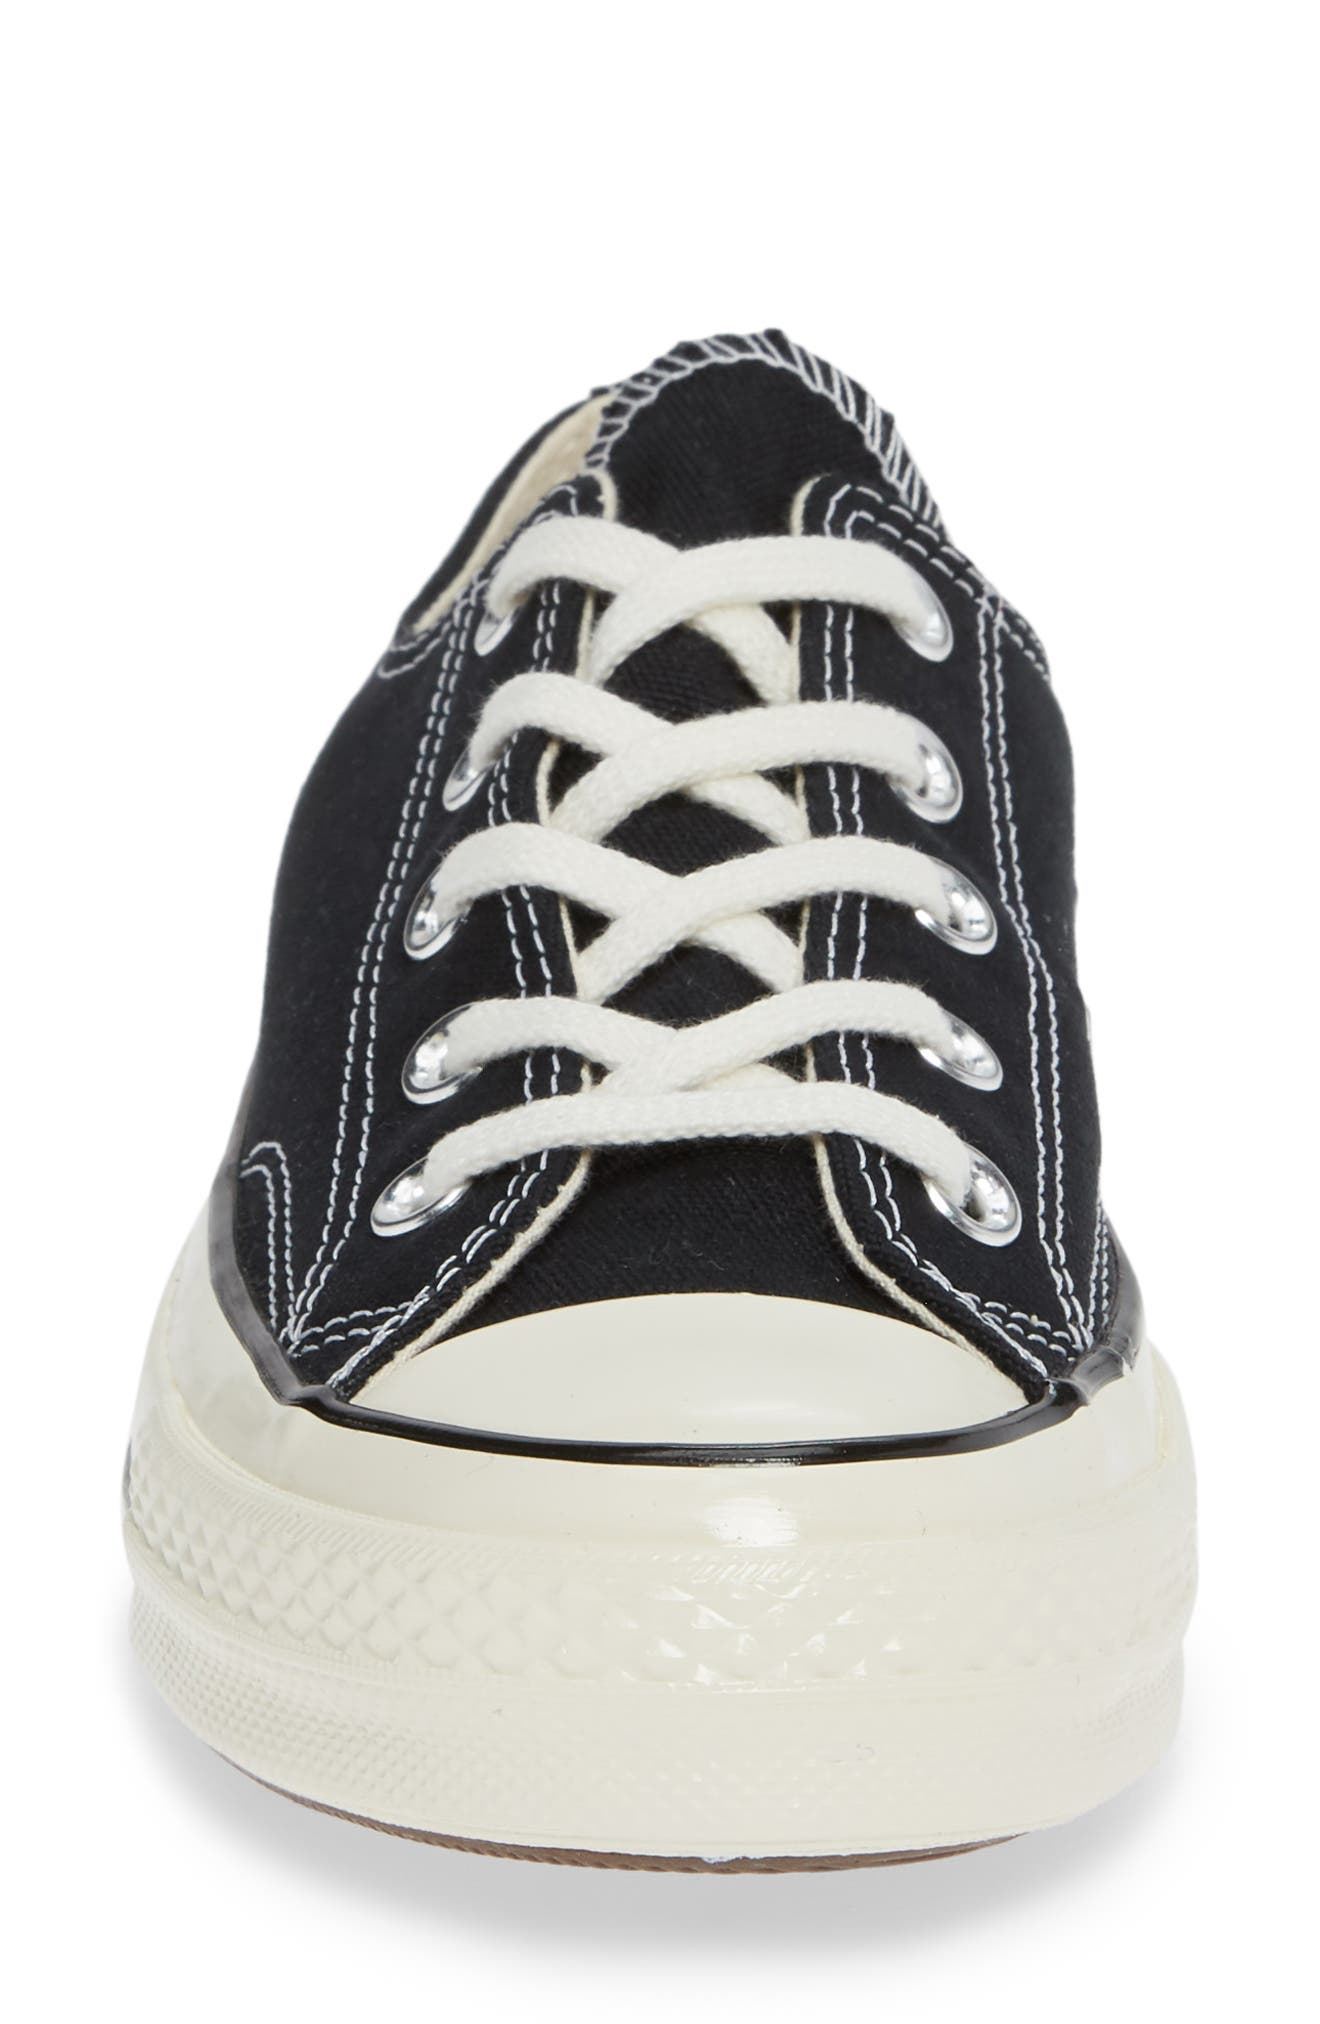 CONVERSE, Chuck Taylor<sup>®</sup> All Star<sup>®</sup> Chuck 70 Ox Sneaker, Alternate thumbnail 4, color, BLACK/ BLACK/ EGRET